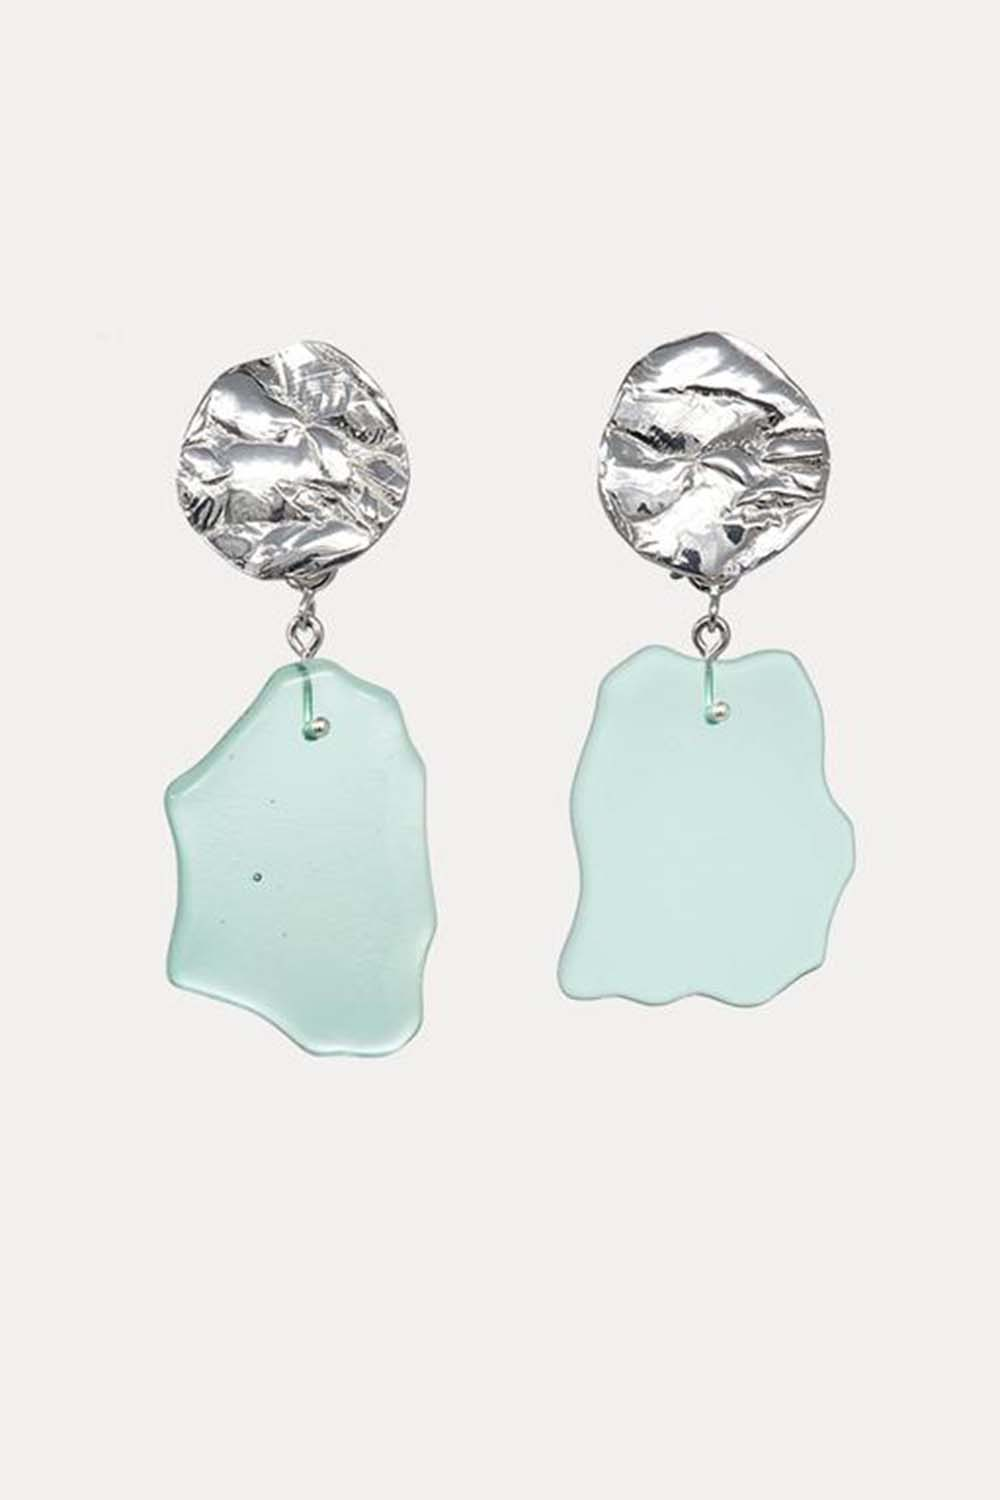 Coastline Earrings Small Mint Ice